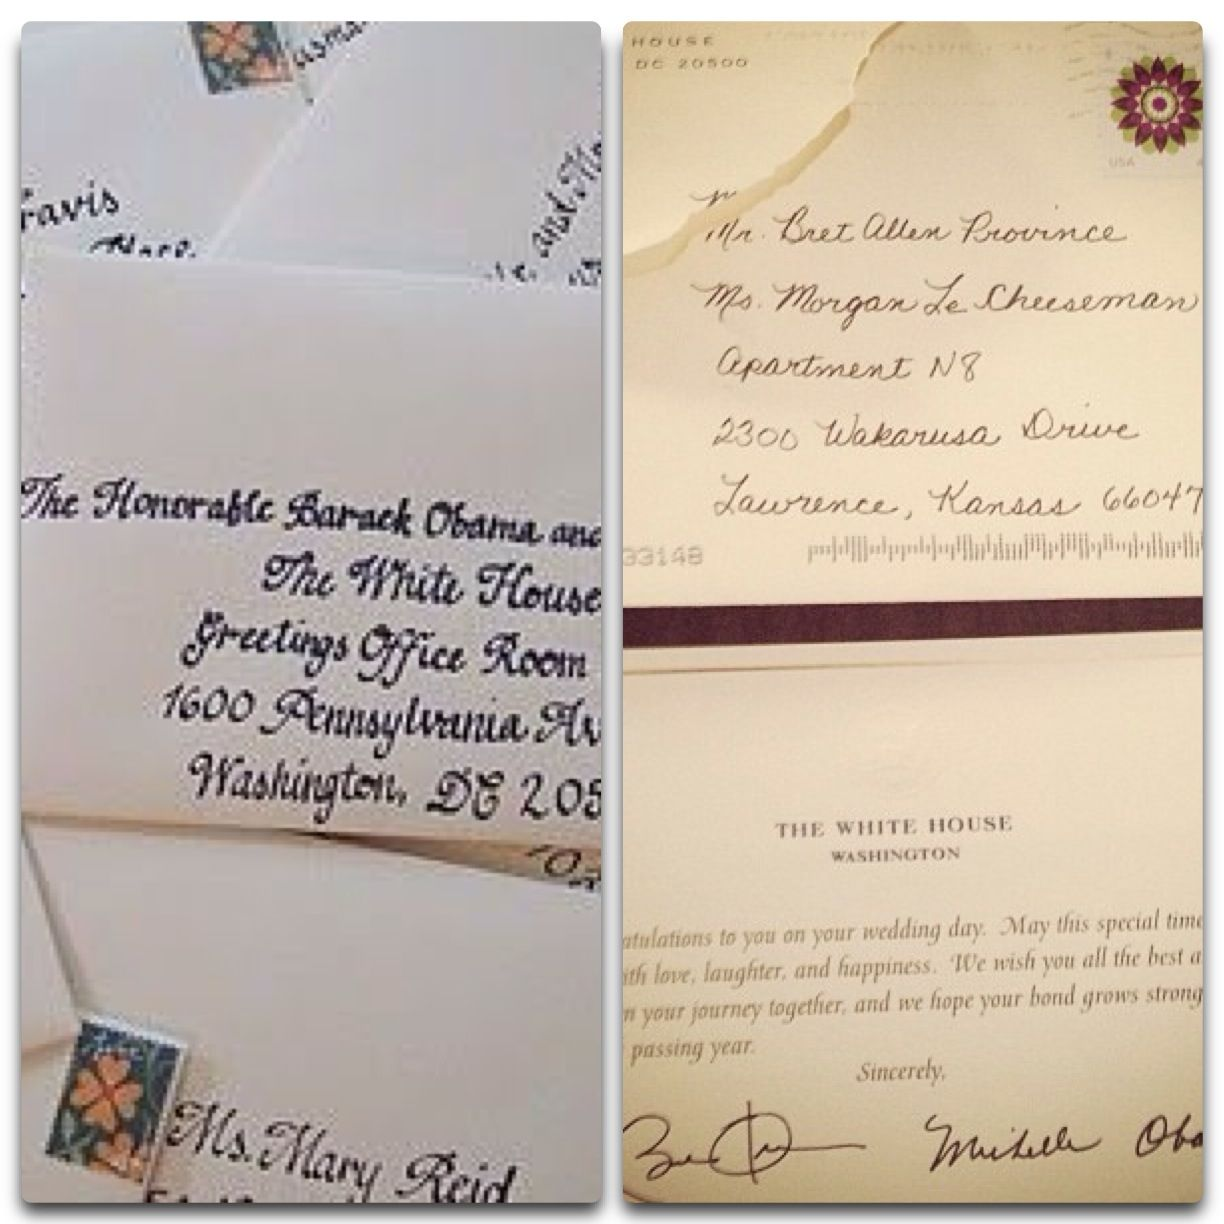 If you send a wedding invitation to the President, you will receive ...